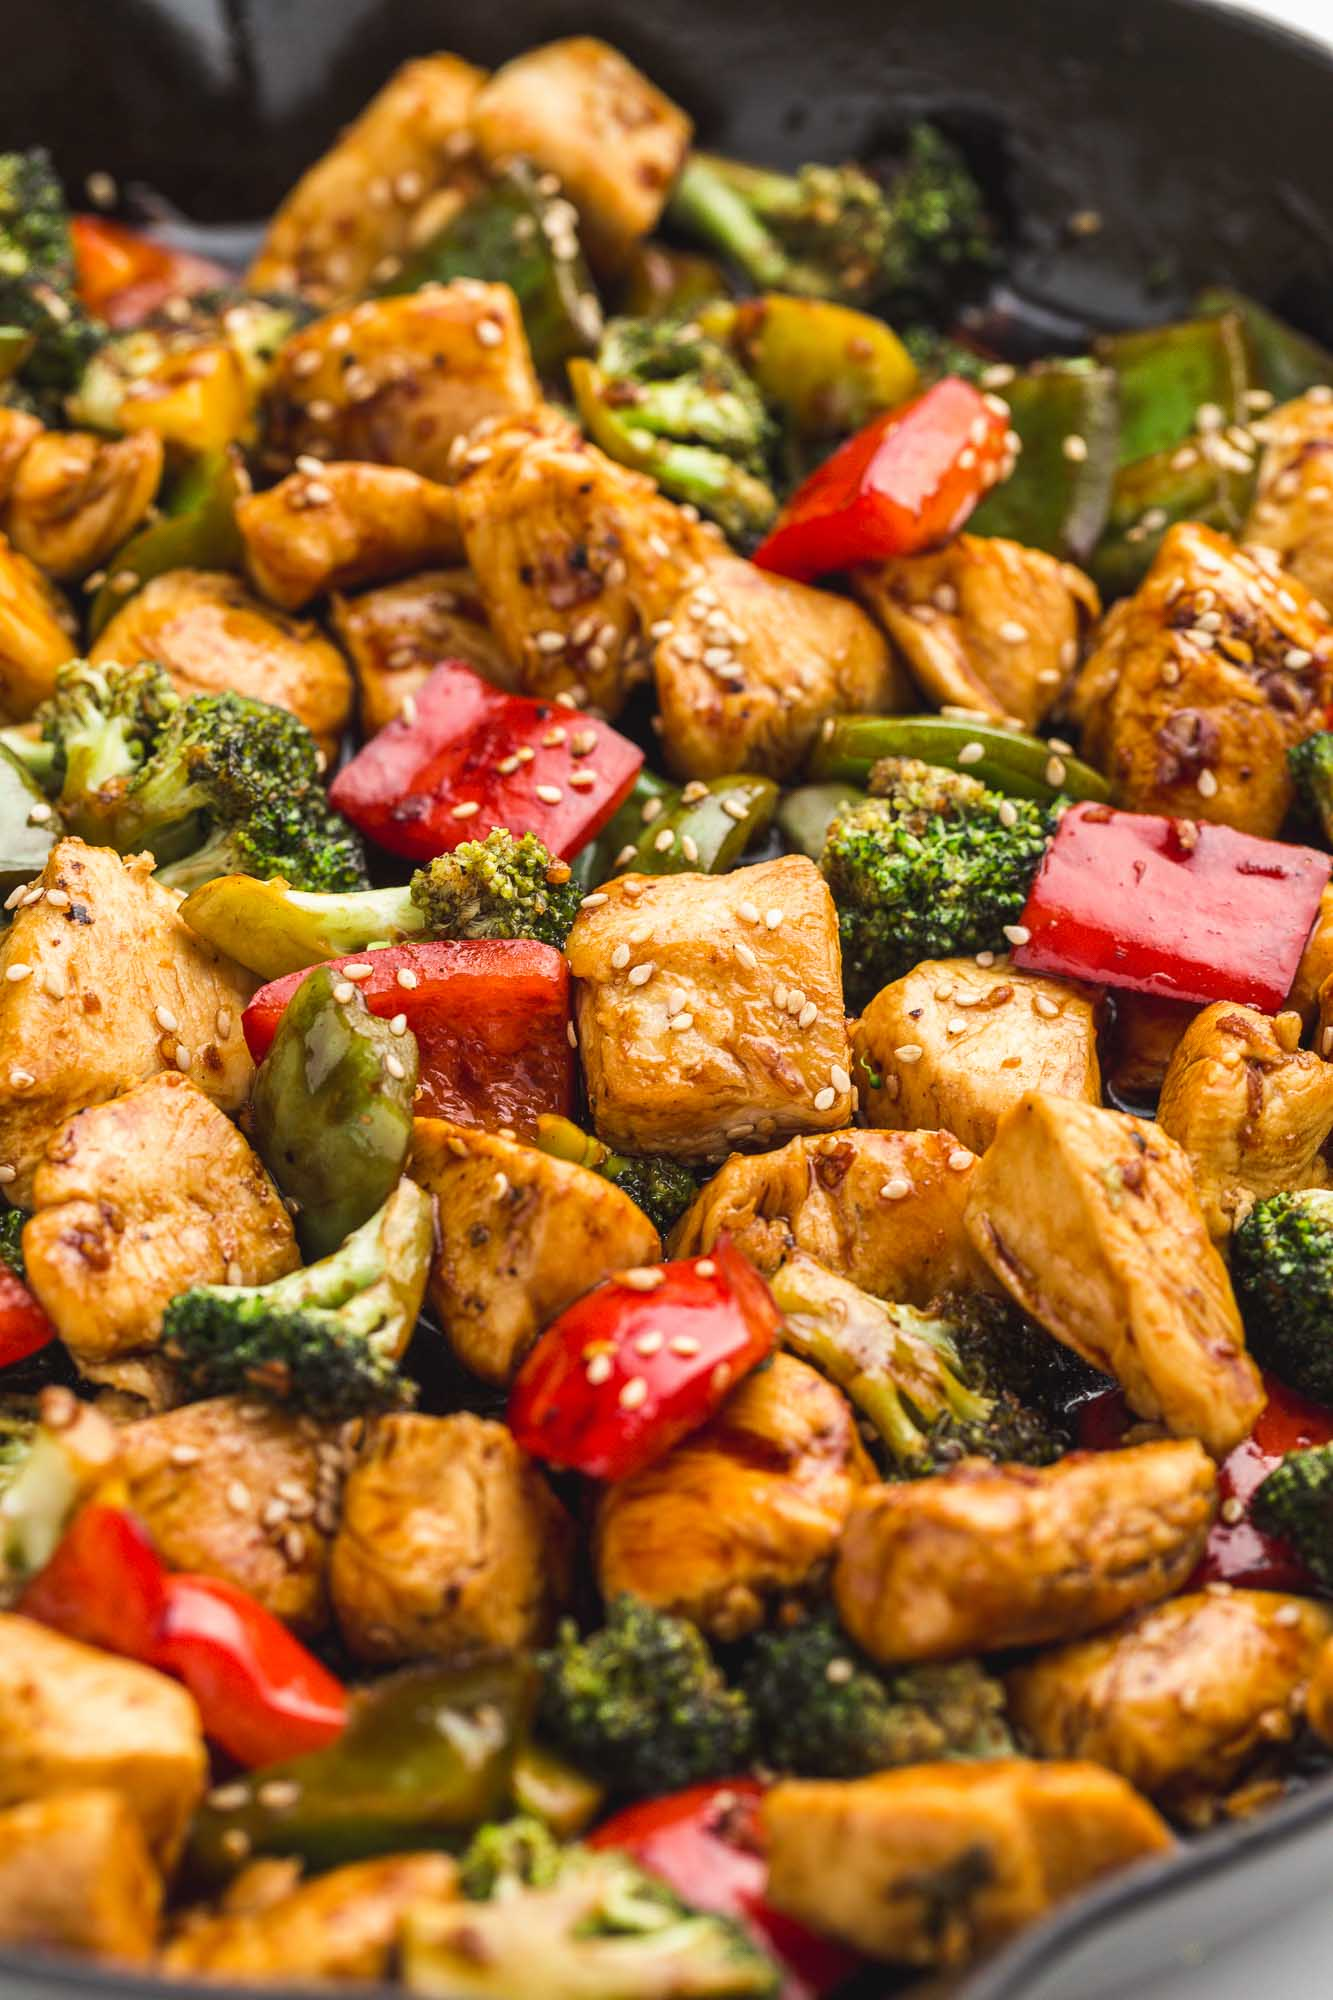 An angle shot of teriyaki chicken stir fry in a cast iron skillet.